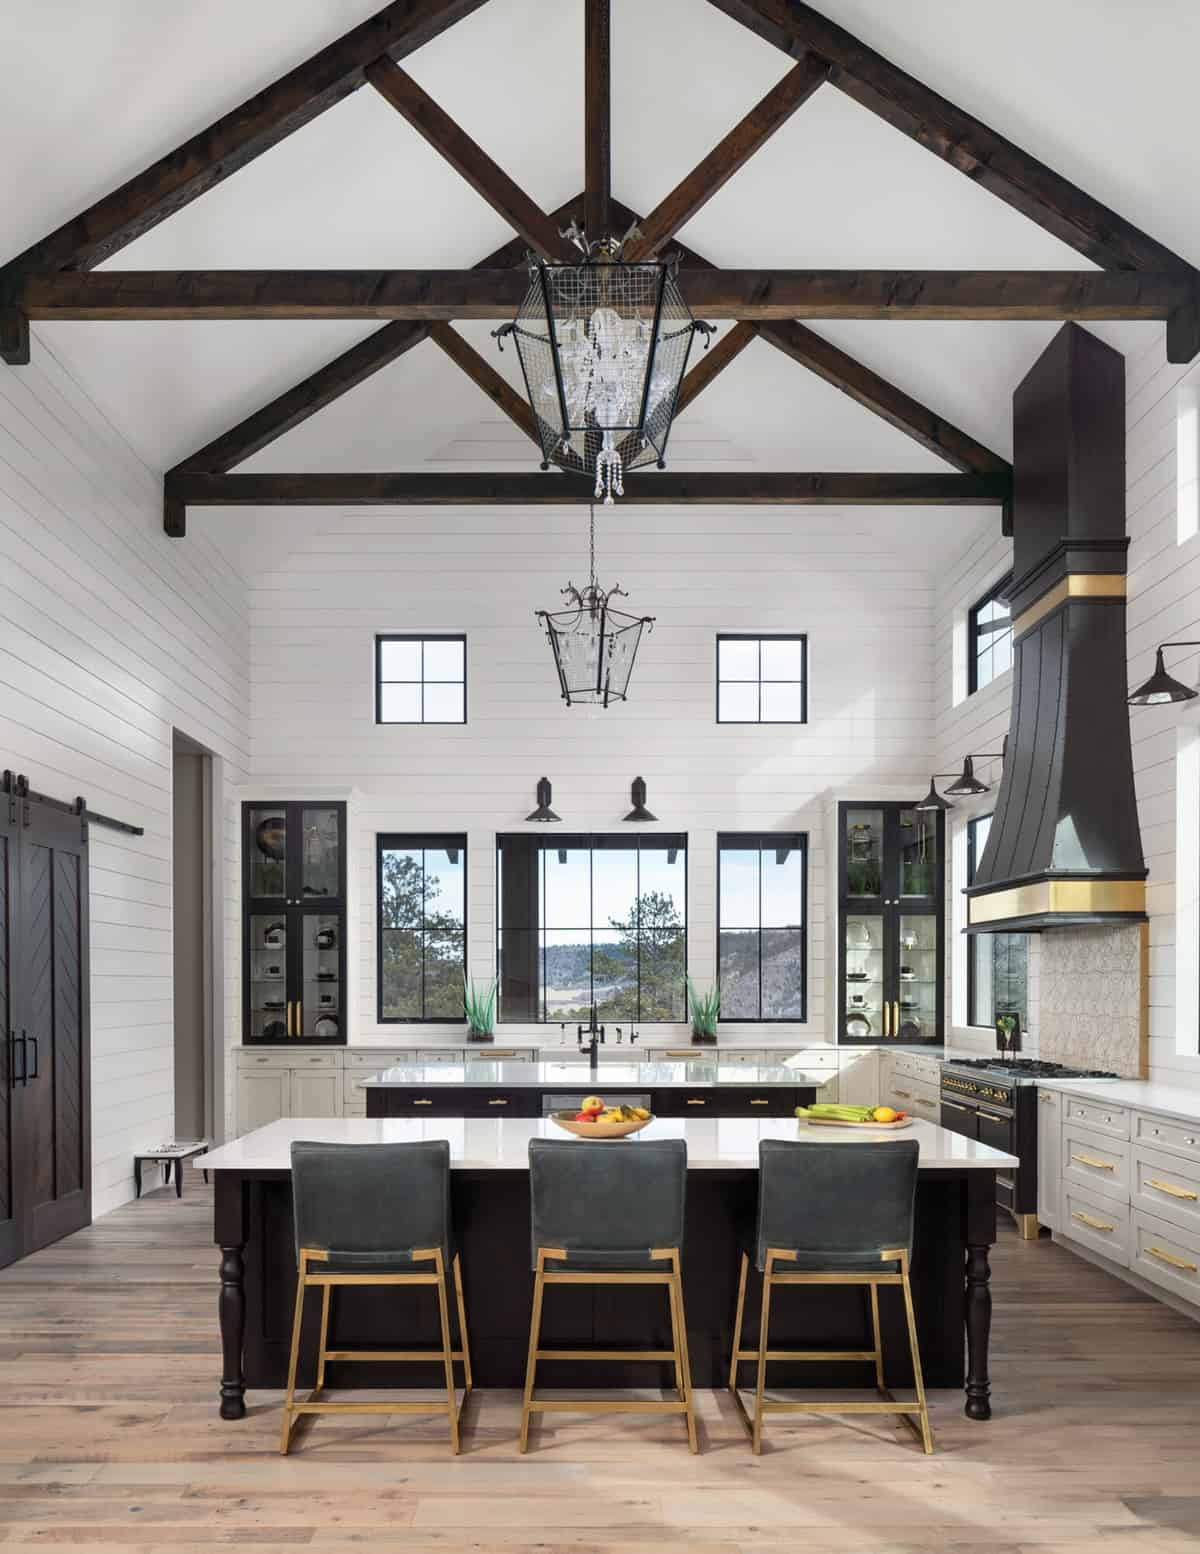 kitchen-with-exposed-ceiling-trusses